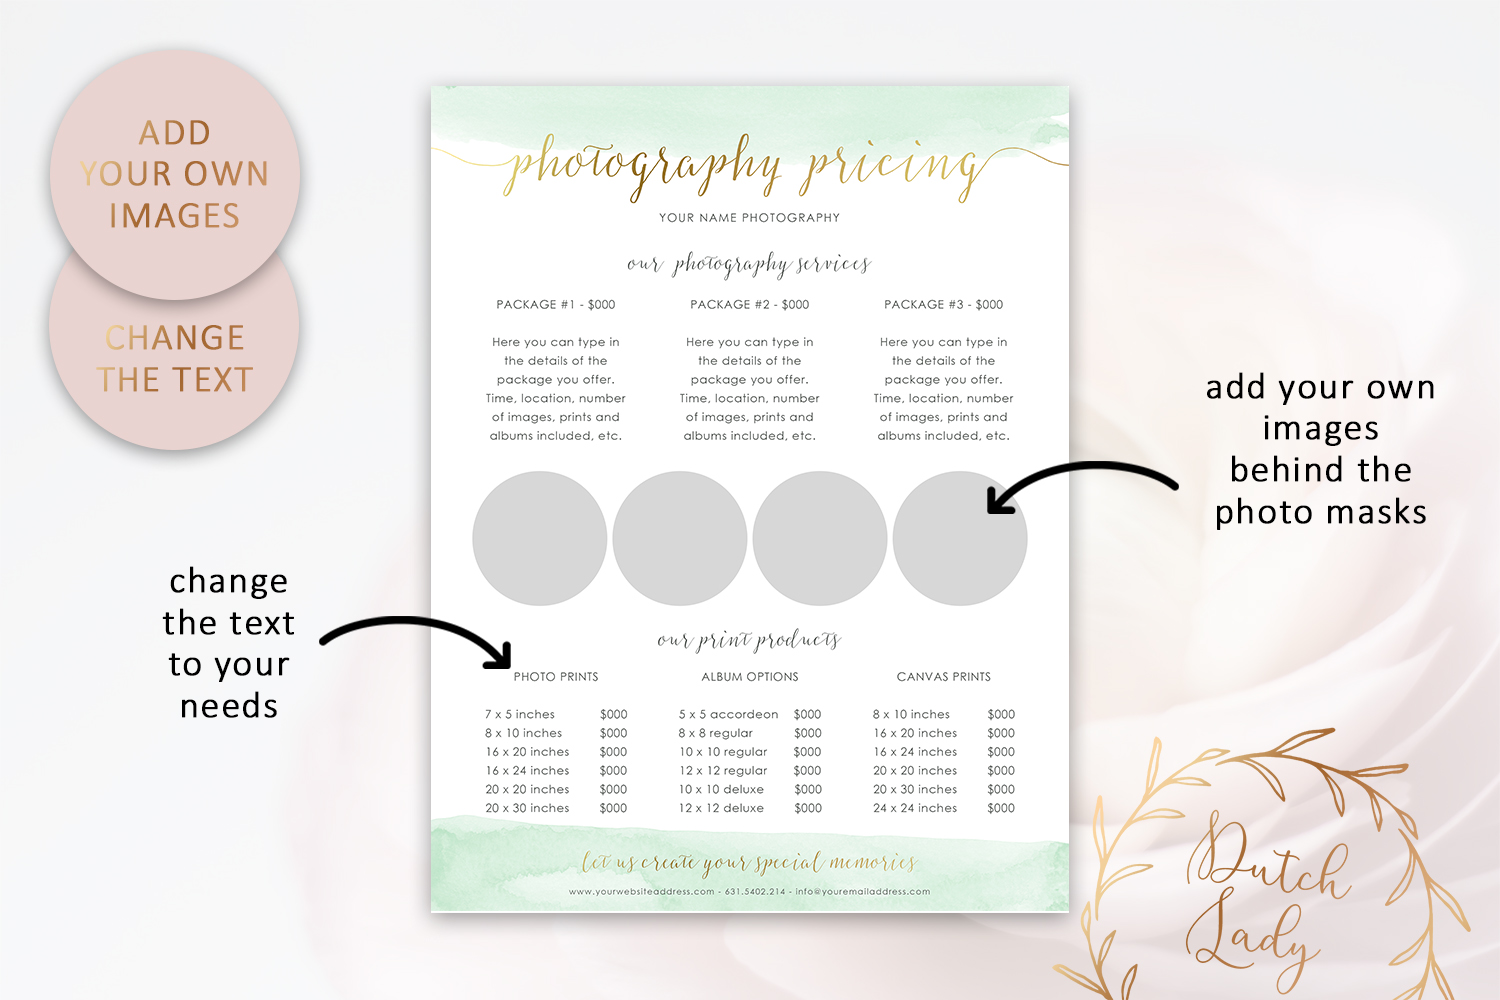 PSD Photography Pricing Guide Template Design #9 example image 3